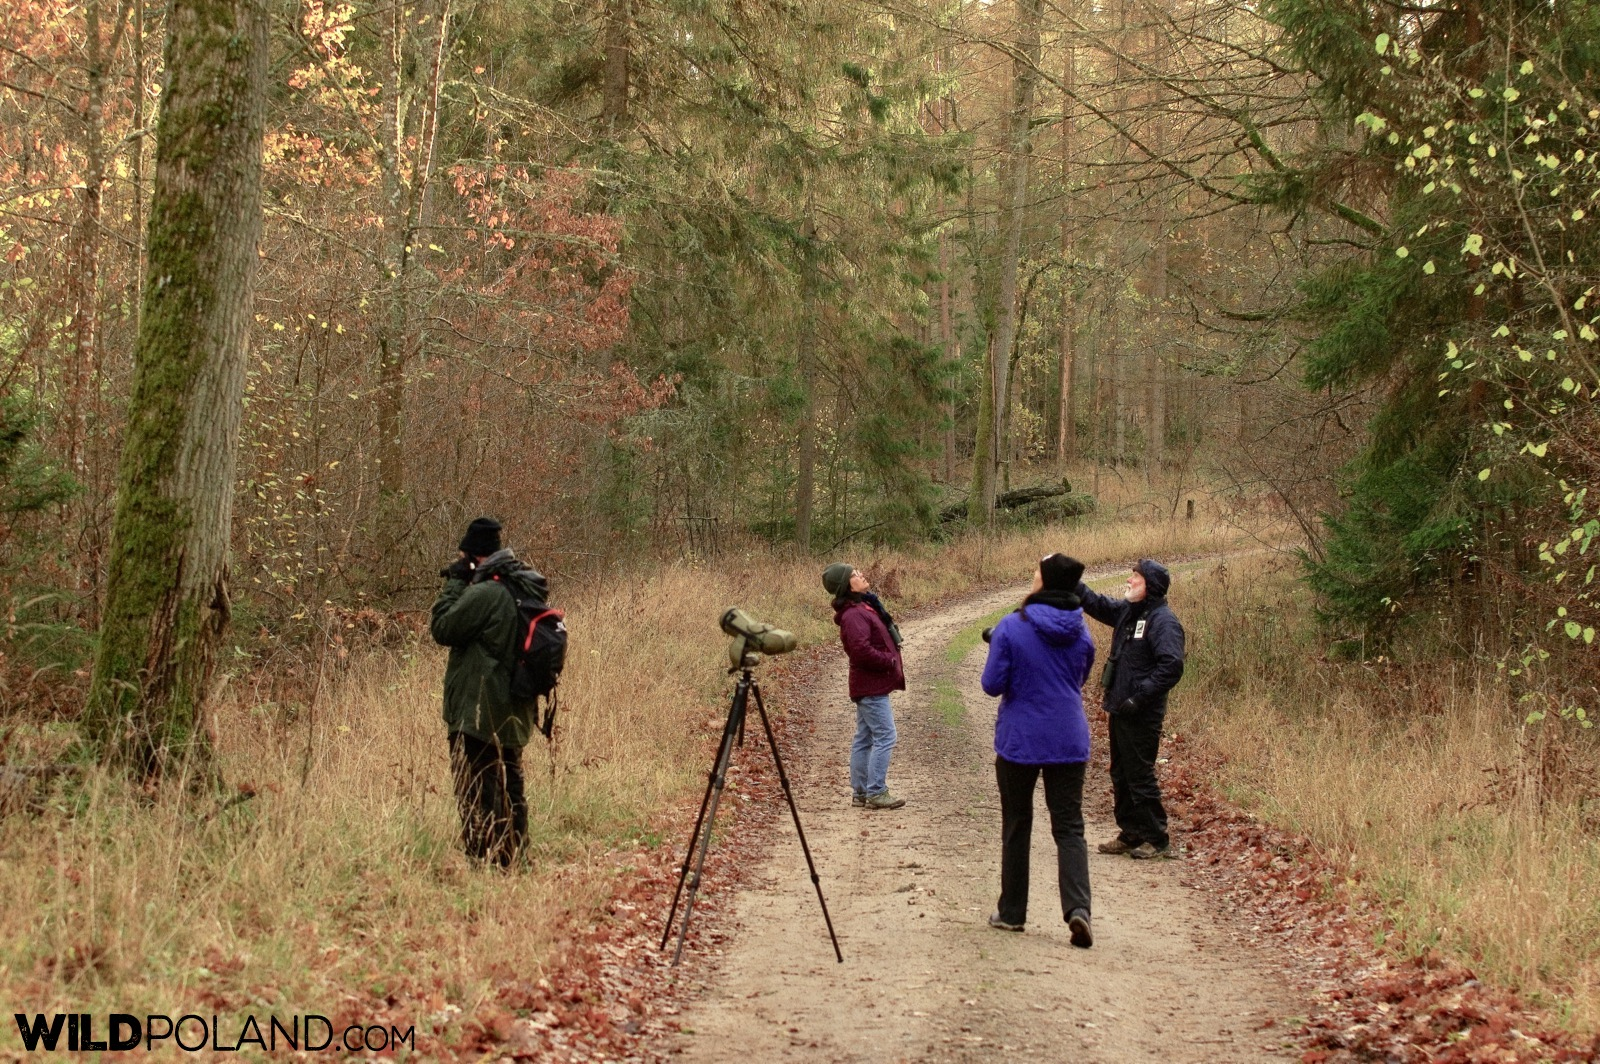 Birdwatching with Wild Poland in the Białowieża Forest, photo by Andrzej Petryna